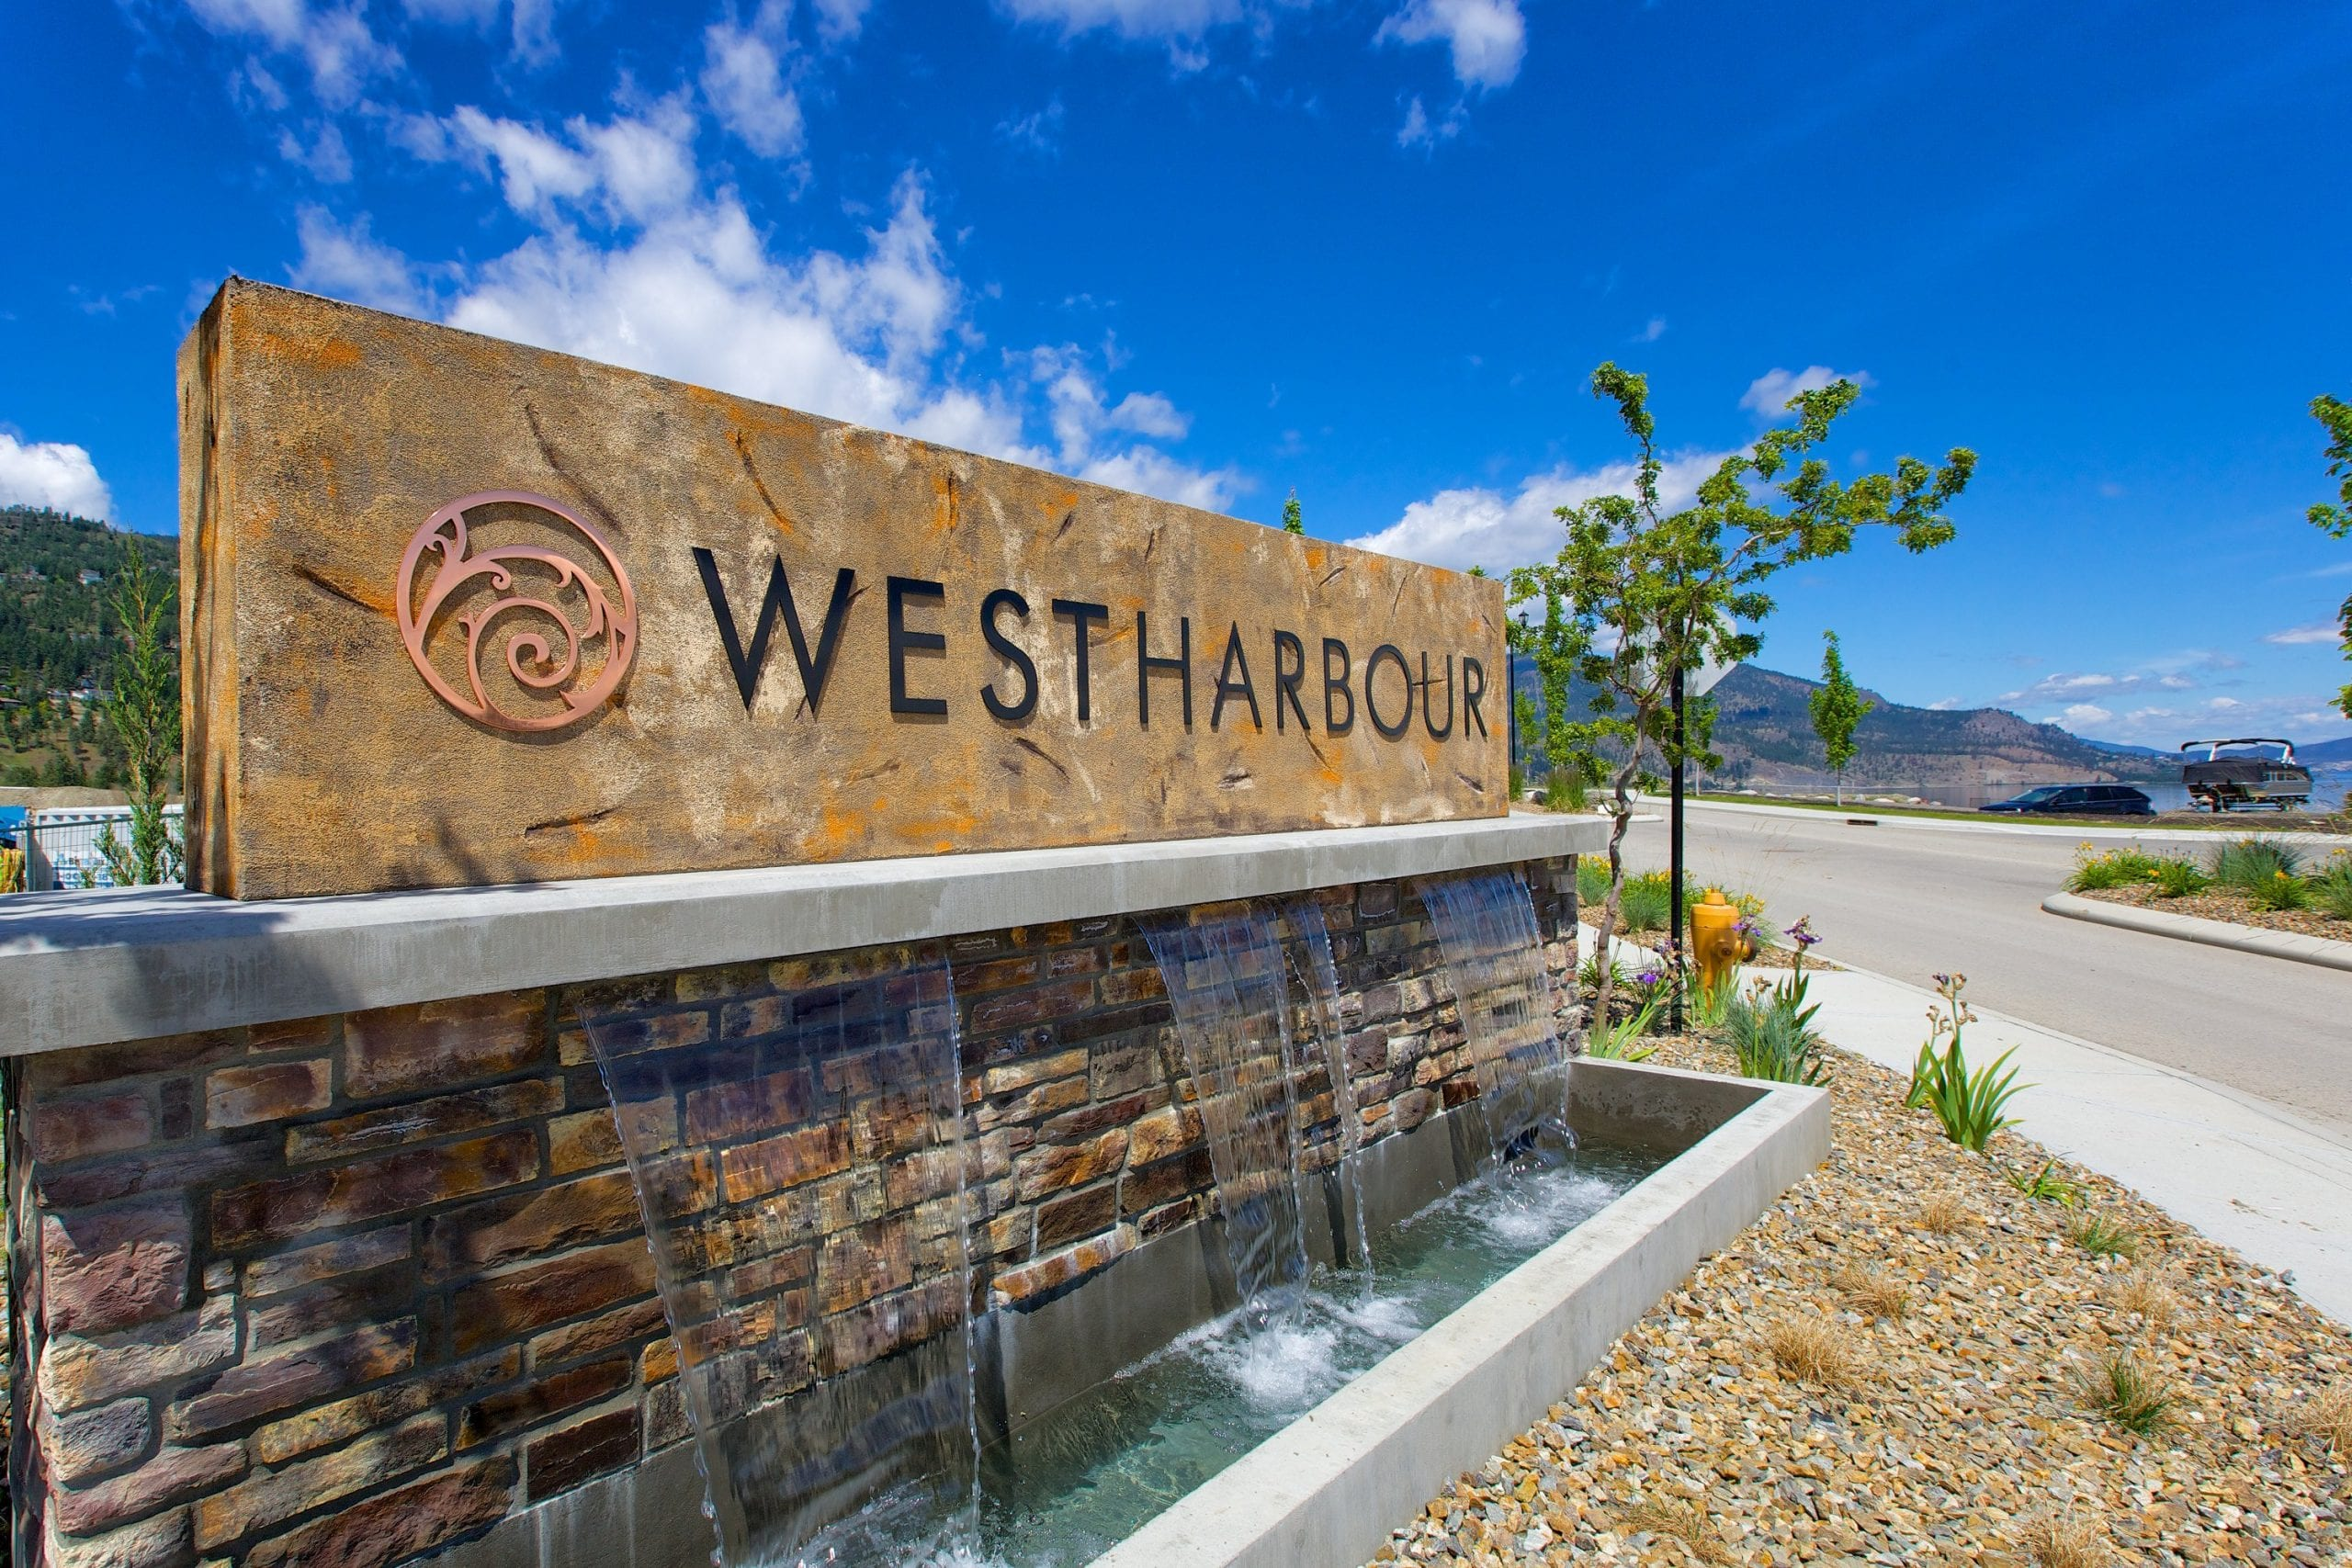 west harbour sign with little fountain streaming from it and okanagan lake in background